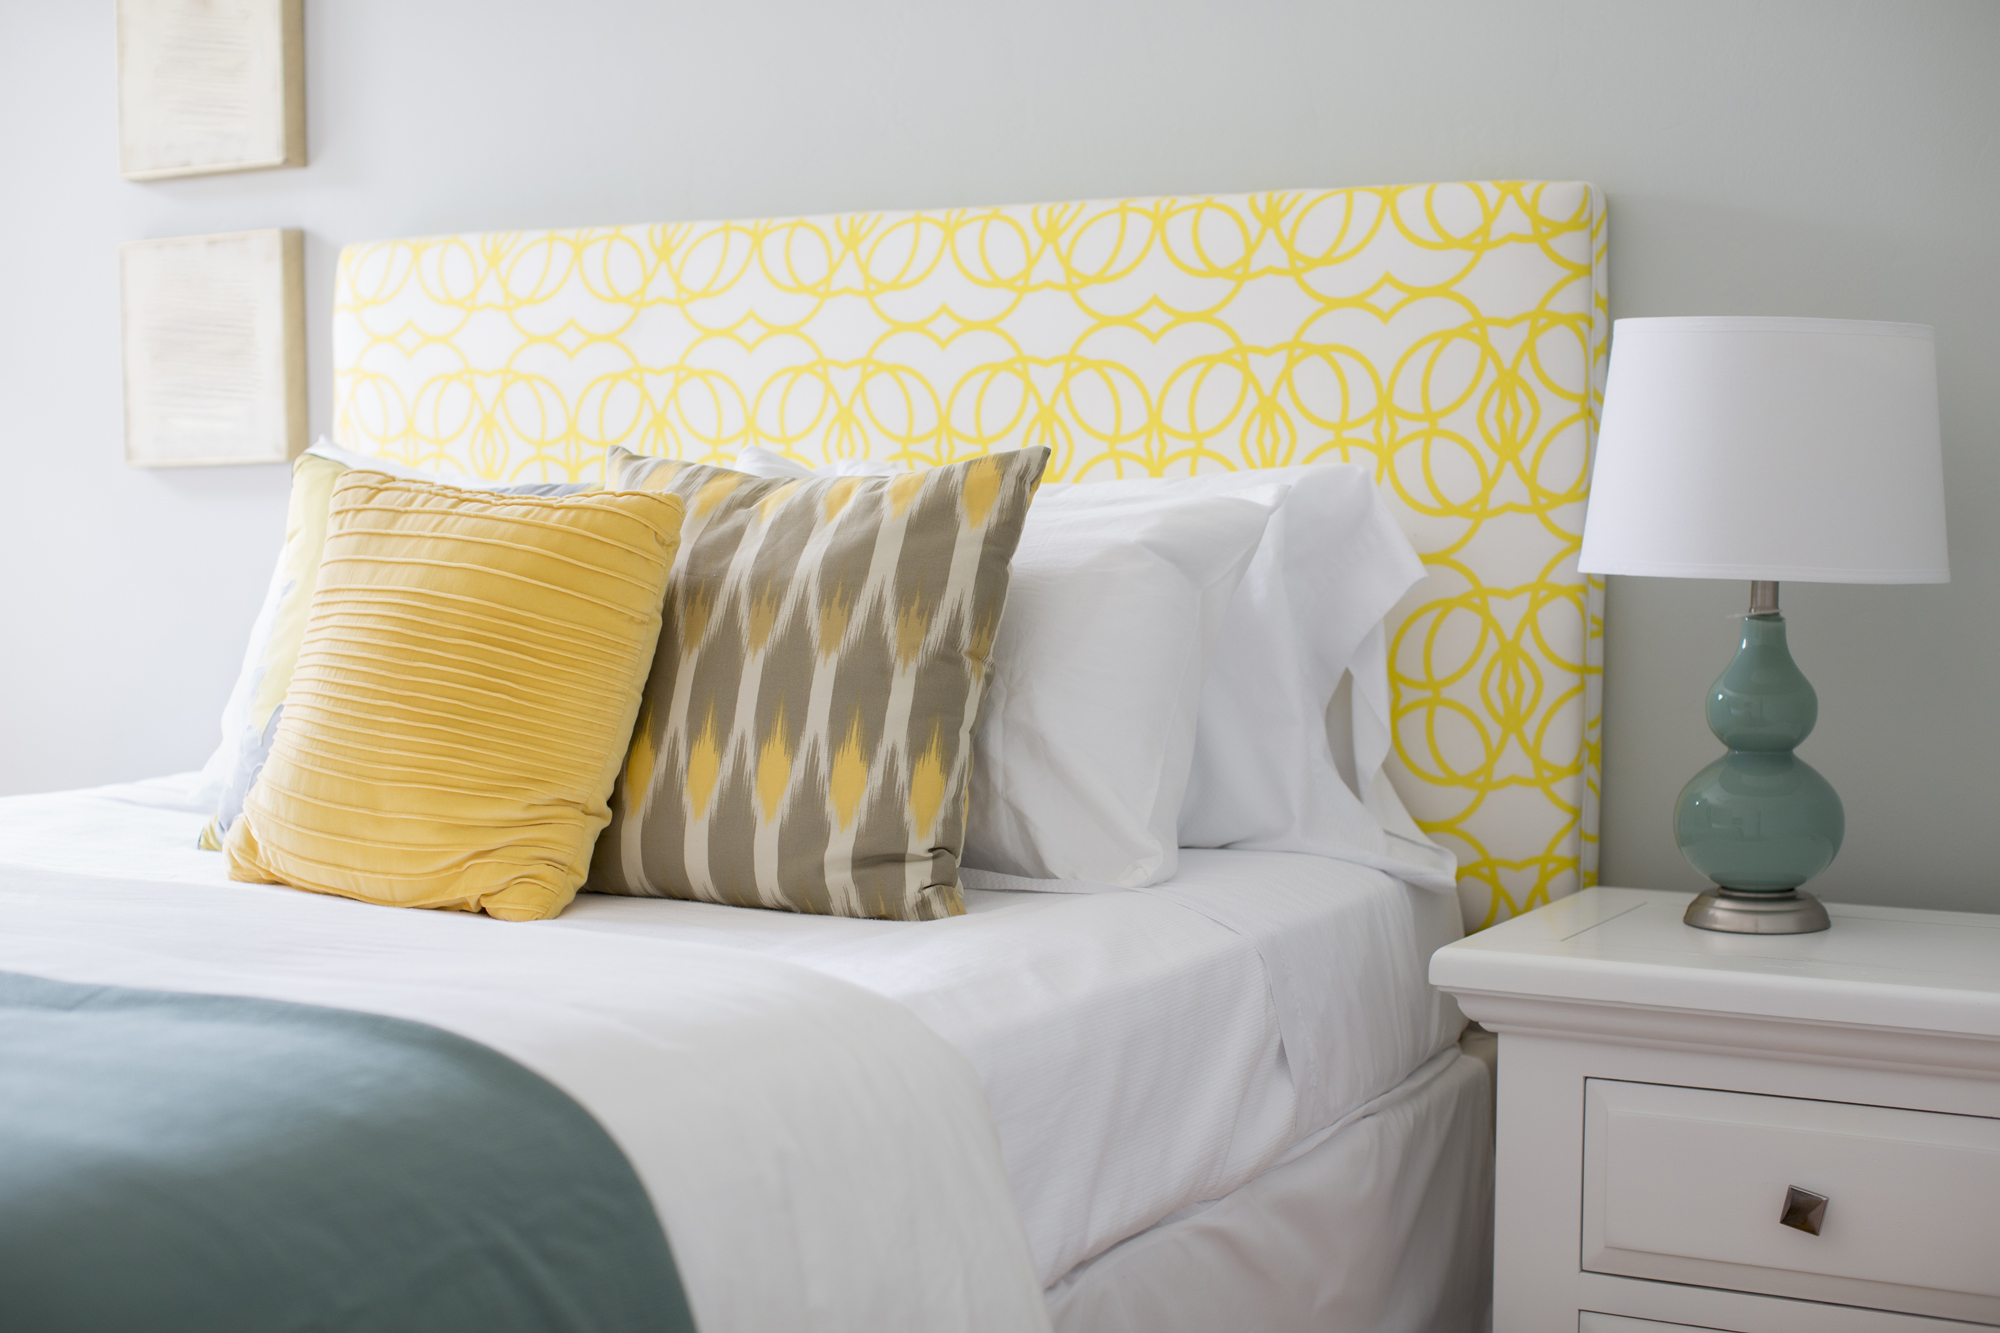 Bed with yellow and white headboard